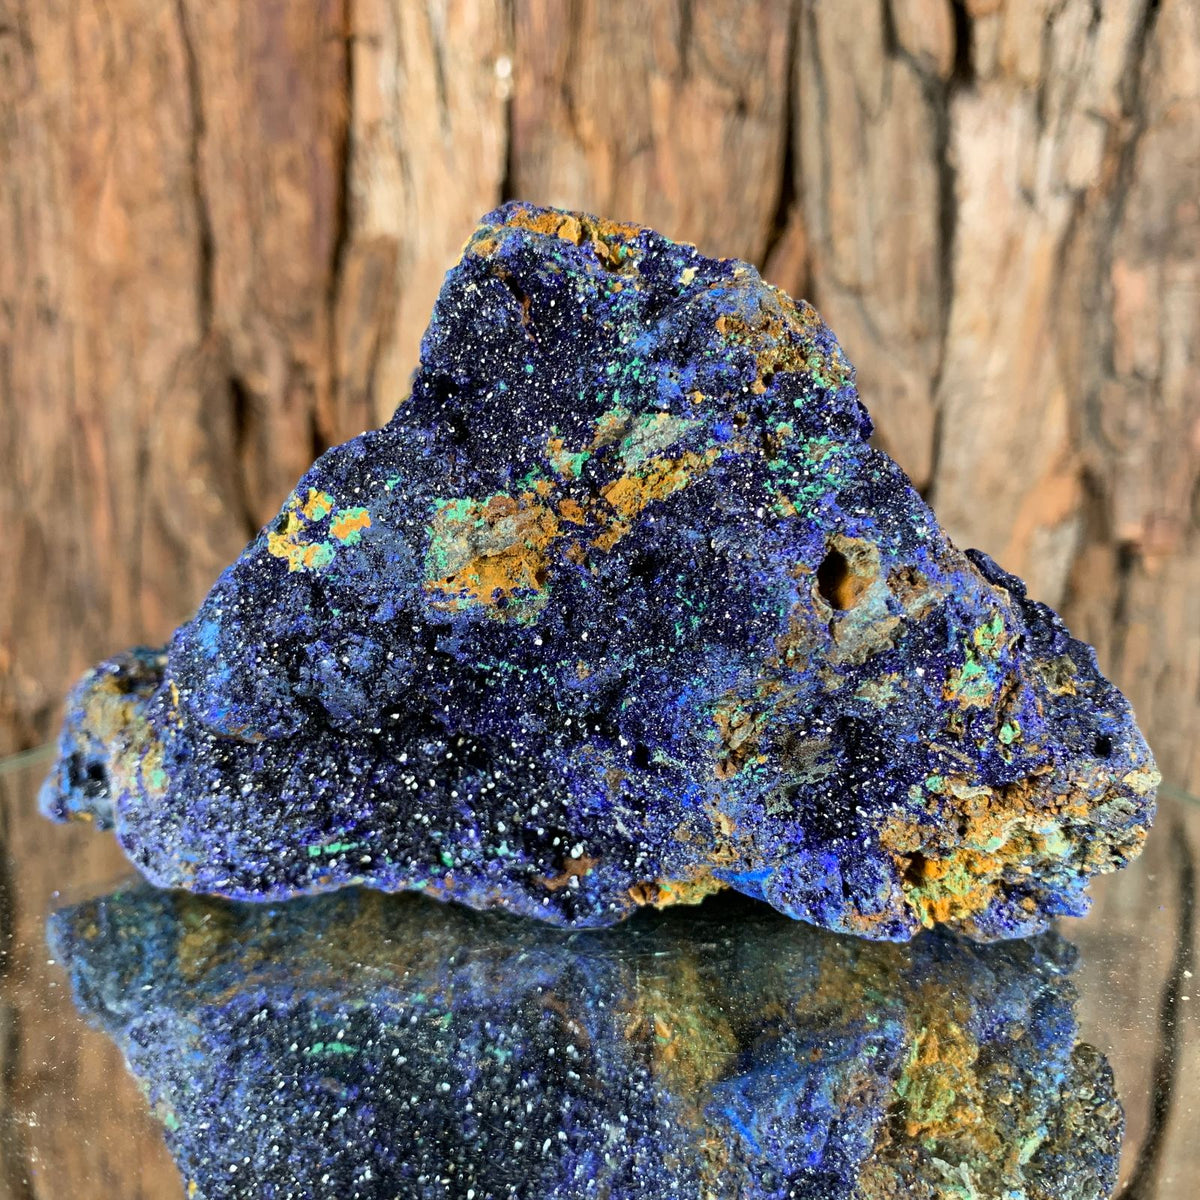 13.5cm 1.13kg Azurite from Sepon Mine, Laos